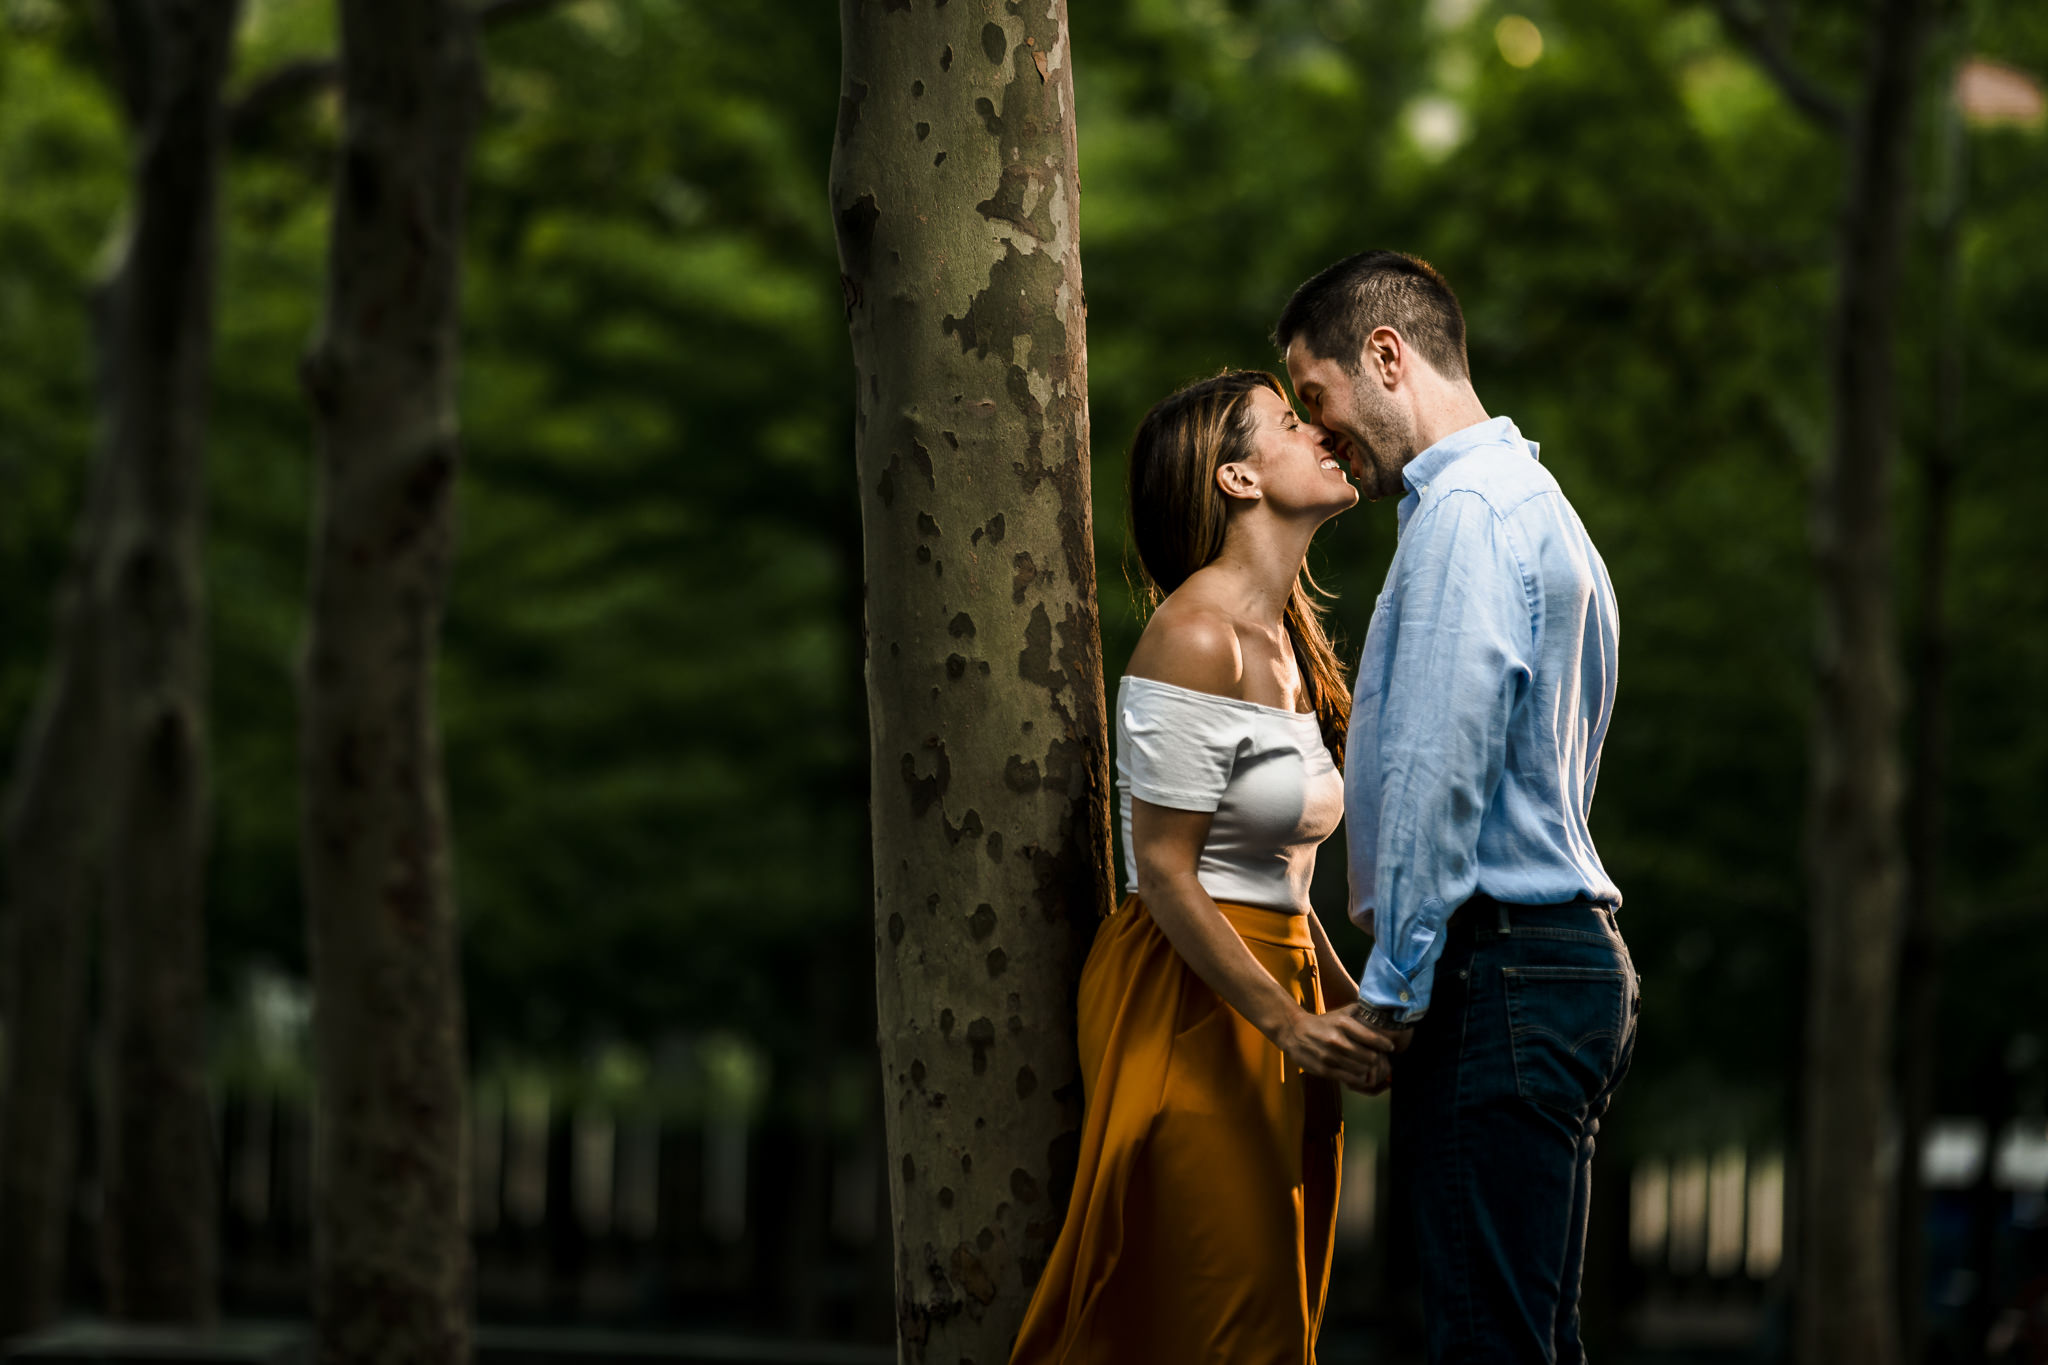 Flanagan-Pier-Hoboken-Engagement-Photos-NYC-Photographer-09.JPG